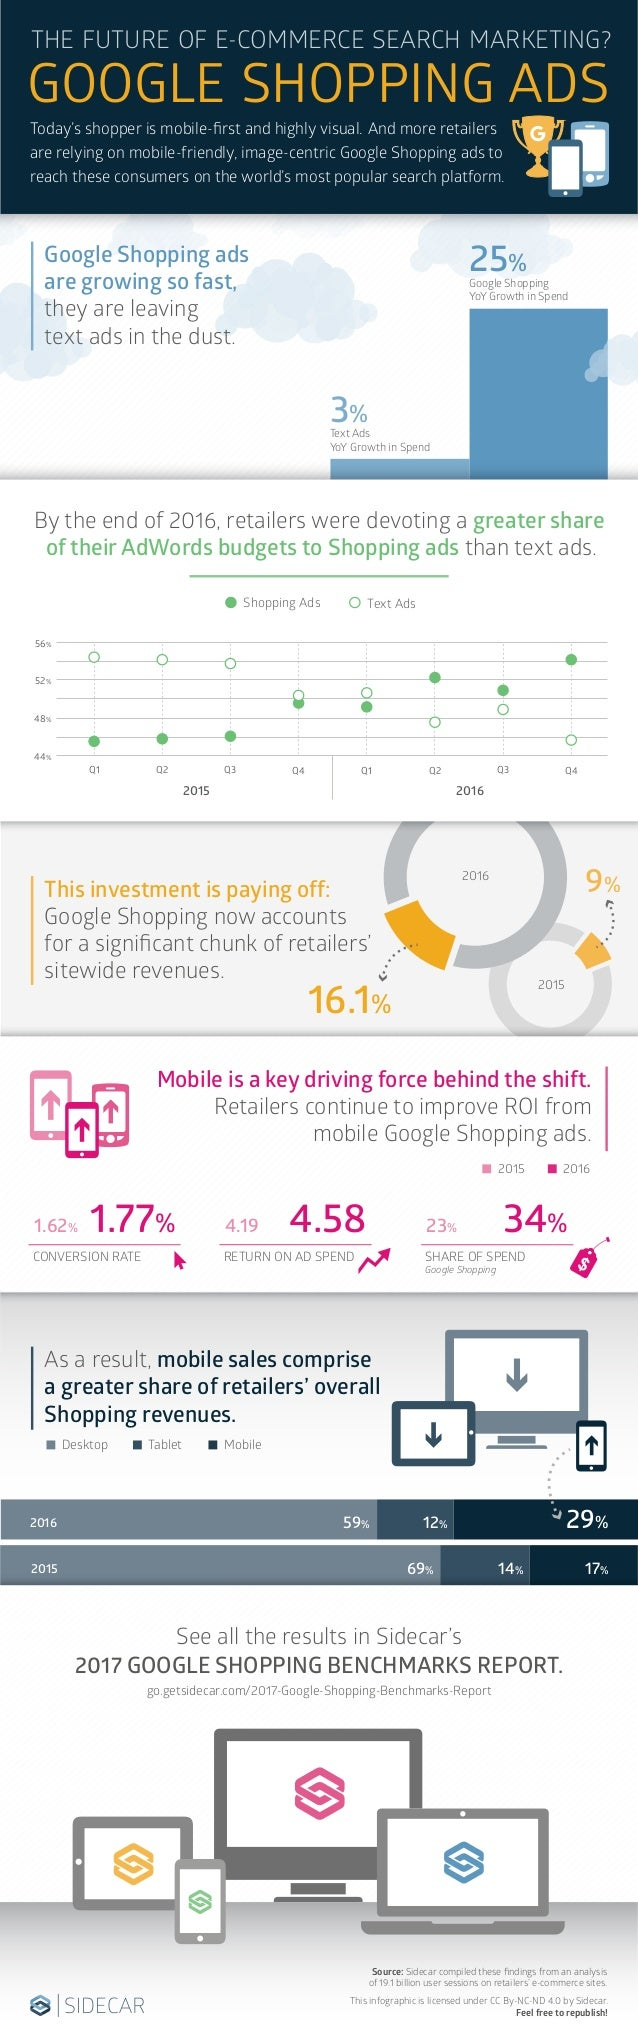 Google Shopping ads are growing so fast, they are leaving text ads in the dust. By the end of 2016, retailers were devotin...